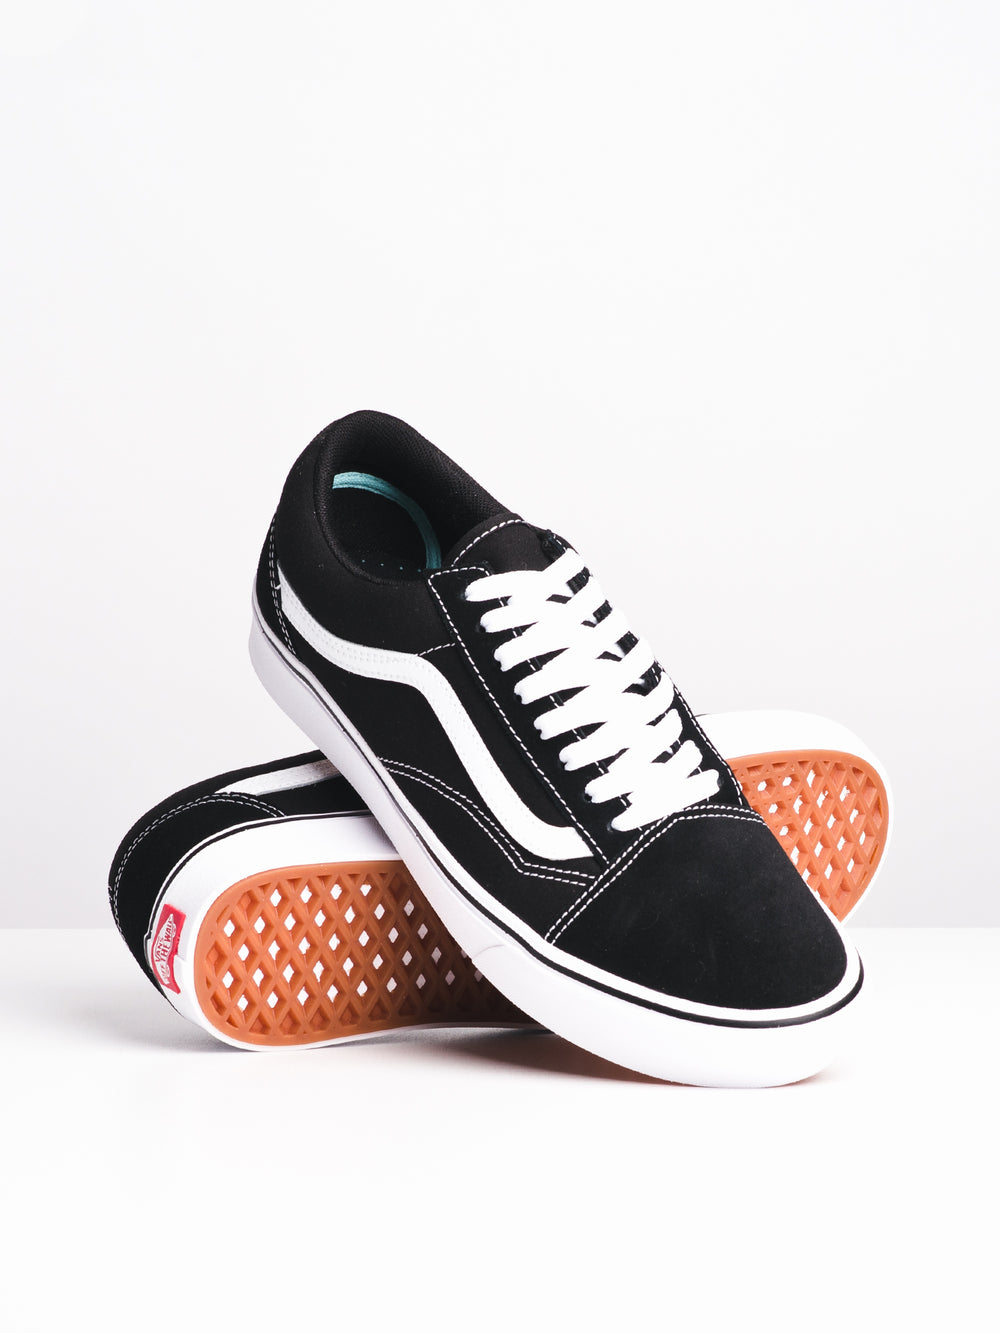 MENS COMFYCUSH OLD SKOOL - BLK/WHT